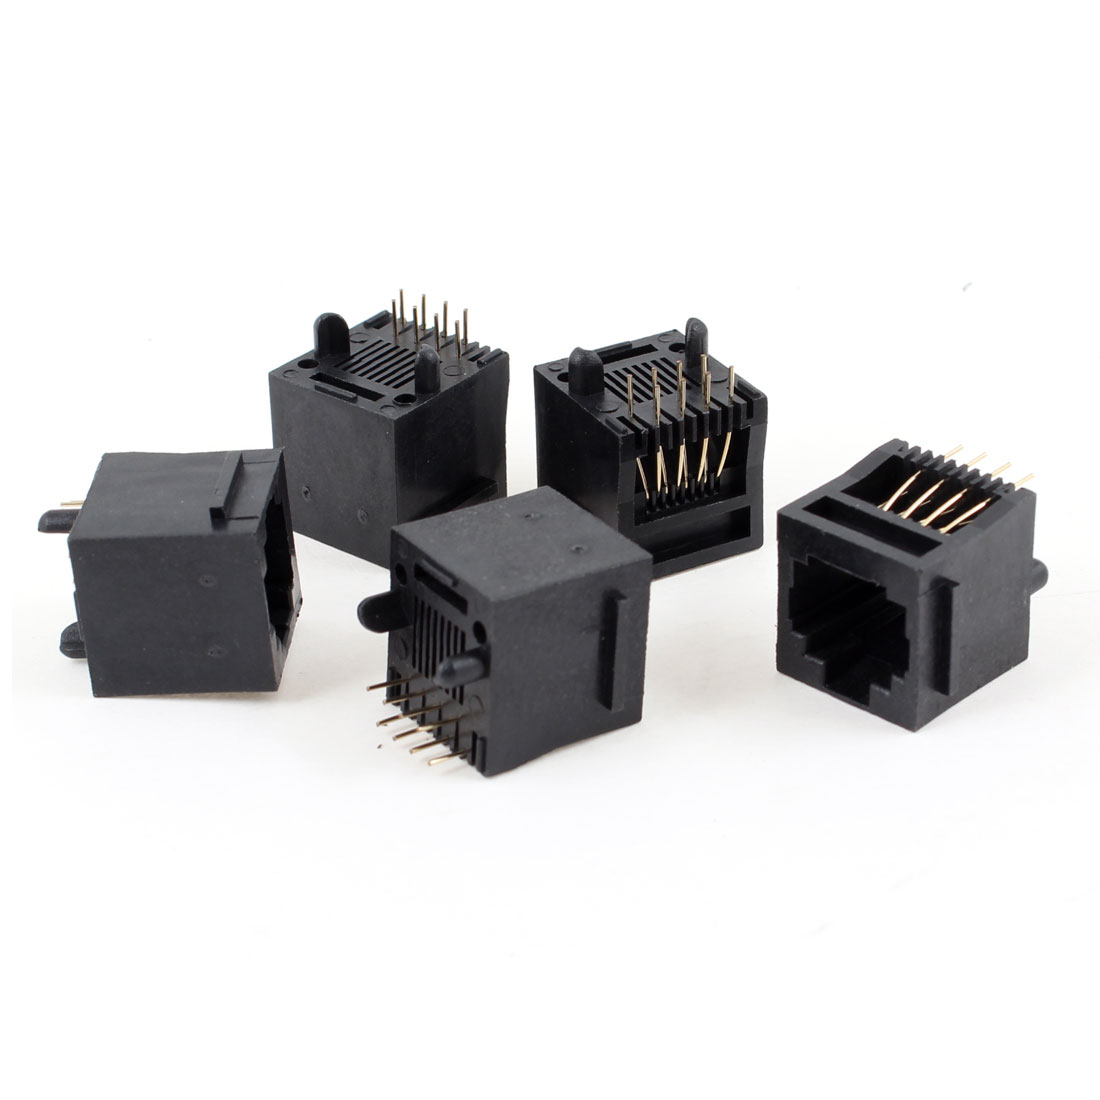 5 Pcs Unshielded RJ45 8P8C 8 Round Pin Network Modular PCB Connector Jacks Black